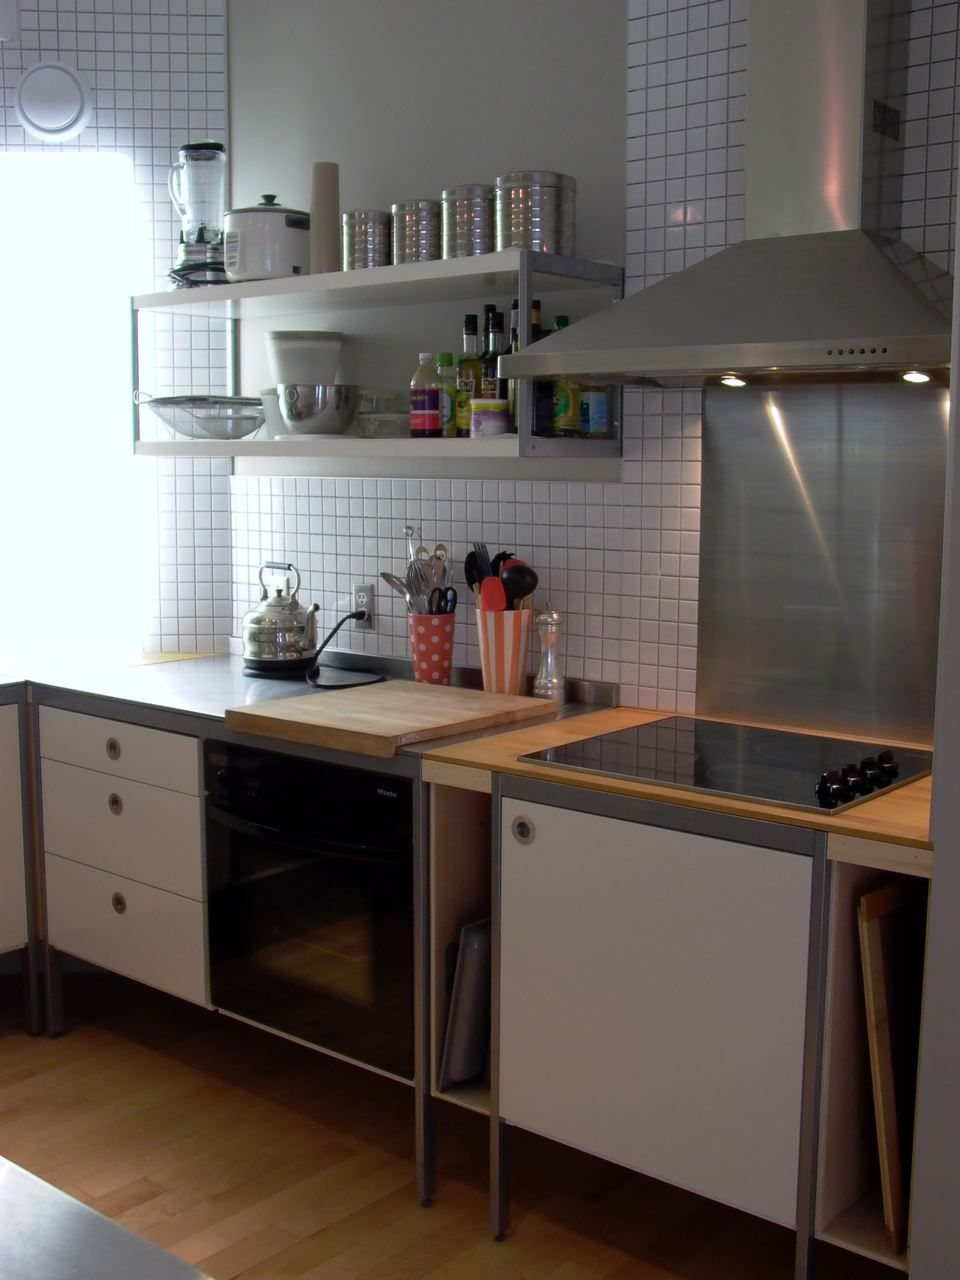 Udden modular kitchen | Ideas for the House | Pinterest | Kitchens ...